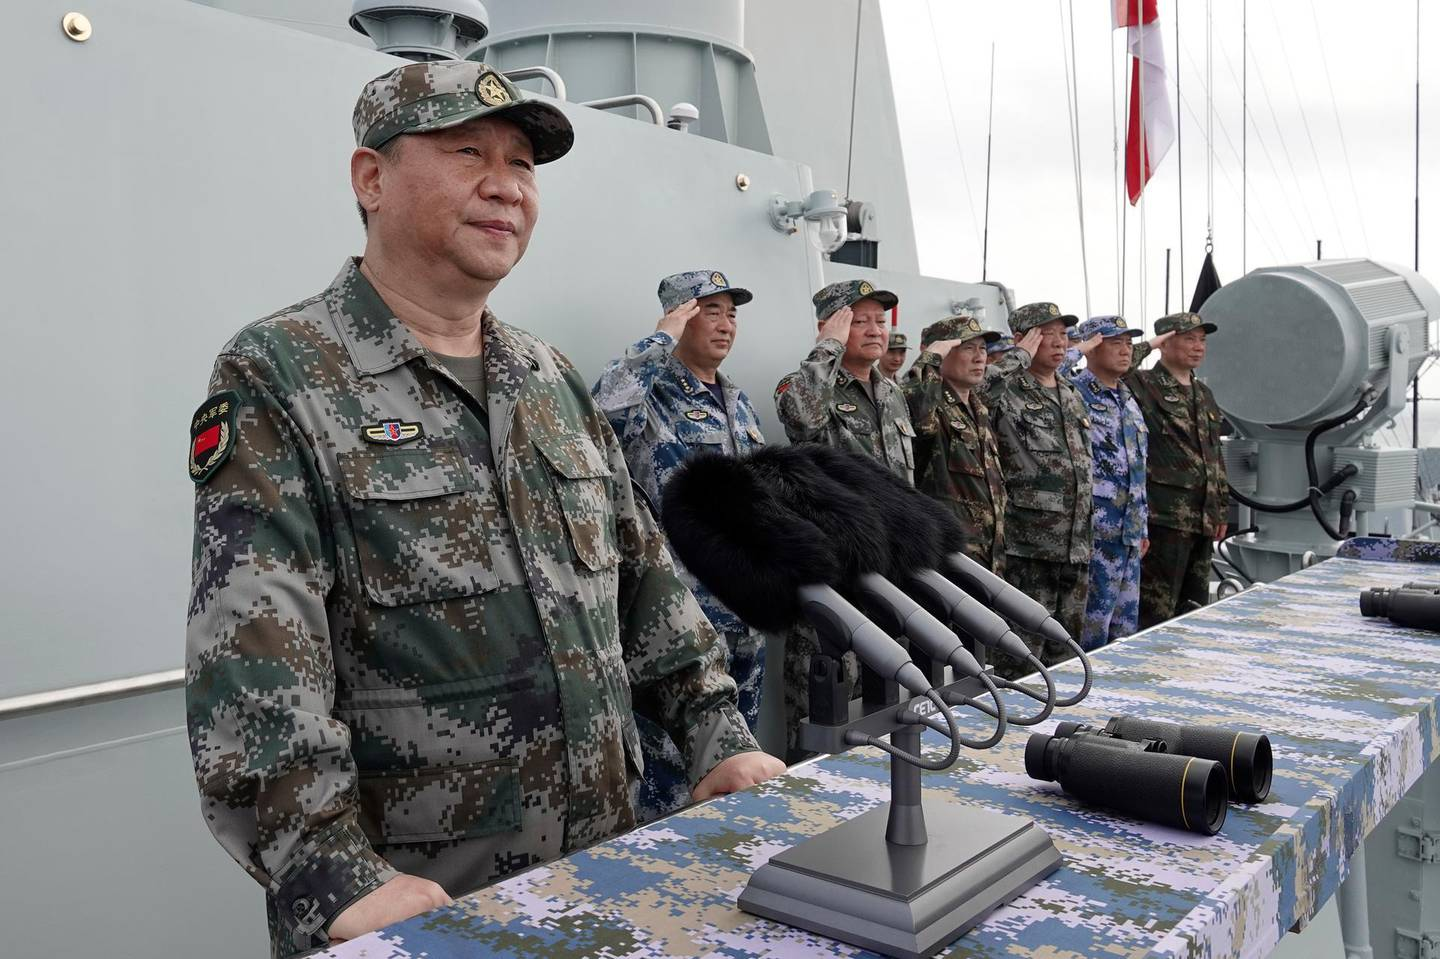 FILE - In this April 12, 2018, file photo released by Xinhua News Agency, Chinese President Xi Jinping, left, speaks after he reviewed the Chinese People's Liberation Army (PLA) Navy fleet in the South China Sea. From Asia to Africa, London to Berlin, Chinese envoys have set off diplomatic firestorms with a combative defense whenever their country is accused of not acting quickly enough to stem the spread of the coronavirus pandemic. (Li Gang/Xinhua via AP, File)